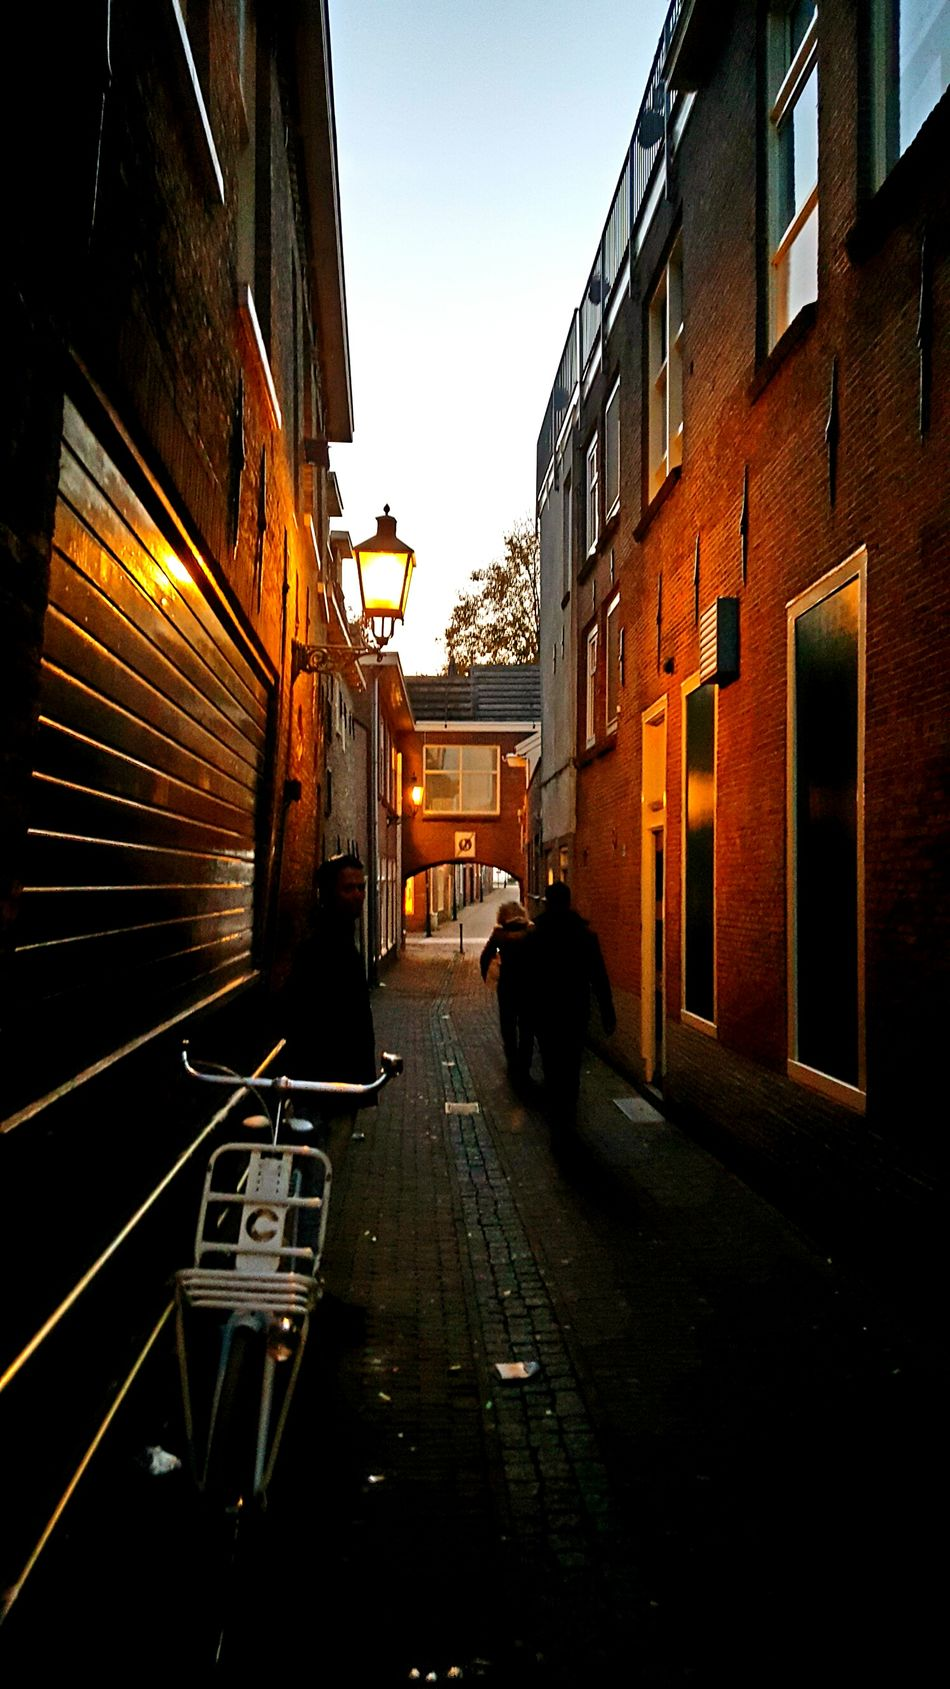 Building Exterior Architecture Built Structure City The Way Forward Outdoors Night Sky Travel Destinations Scenics Old Buildings Dutch Architecture Dutch House Hoorn, Netherlands Netherlands Taking Pictures Hoorn Old Town Taking Photos Dutch Cities History Sunset Nightphotography Night Lights Nightshot